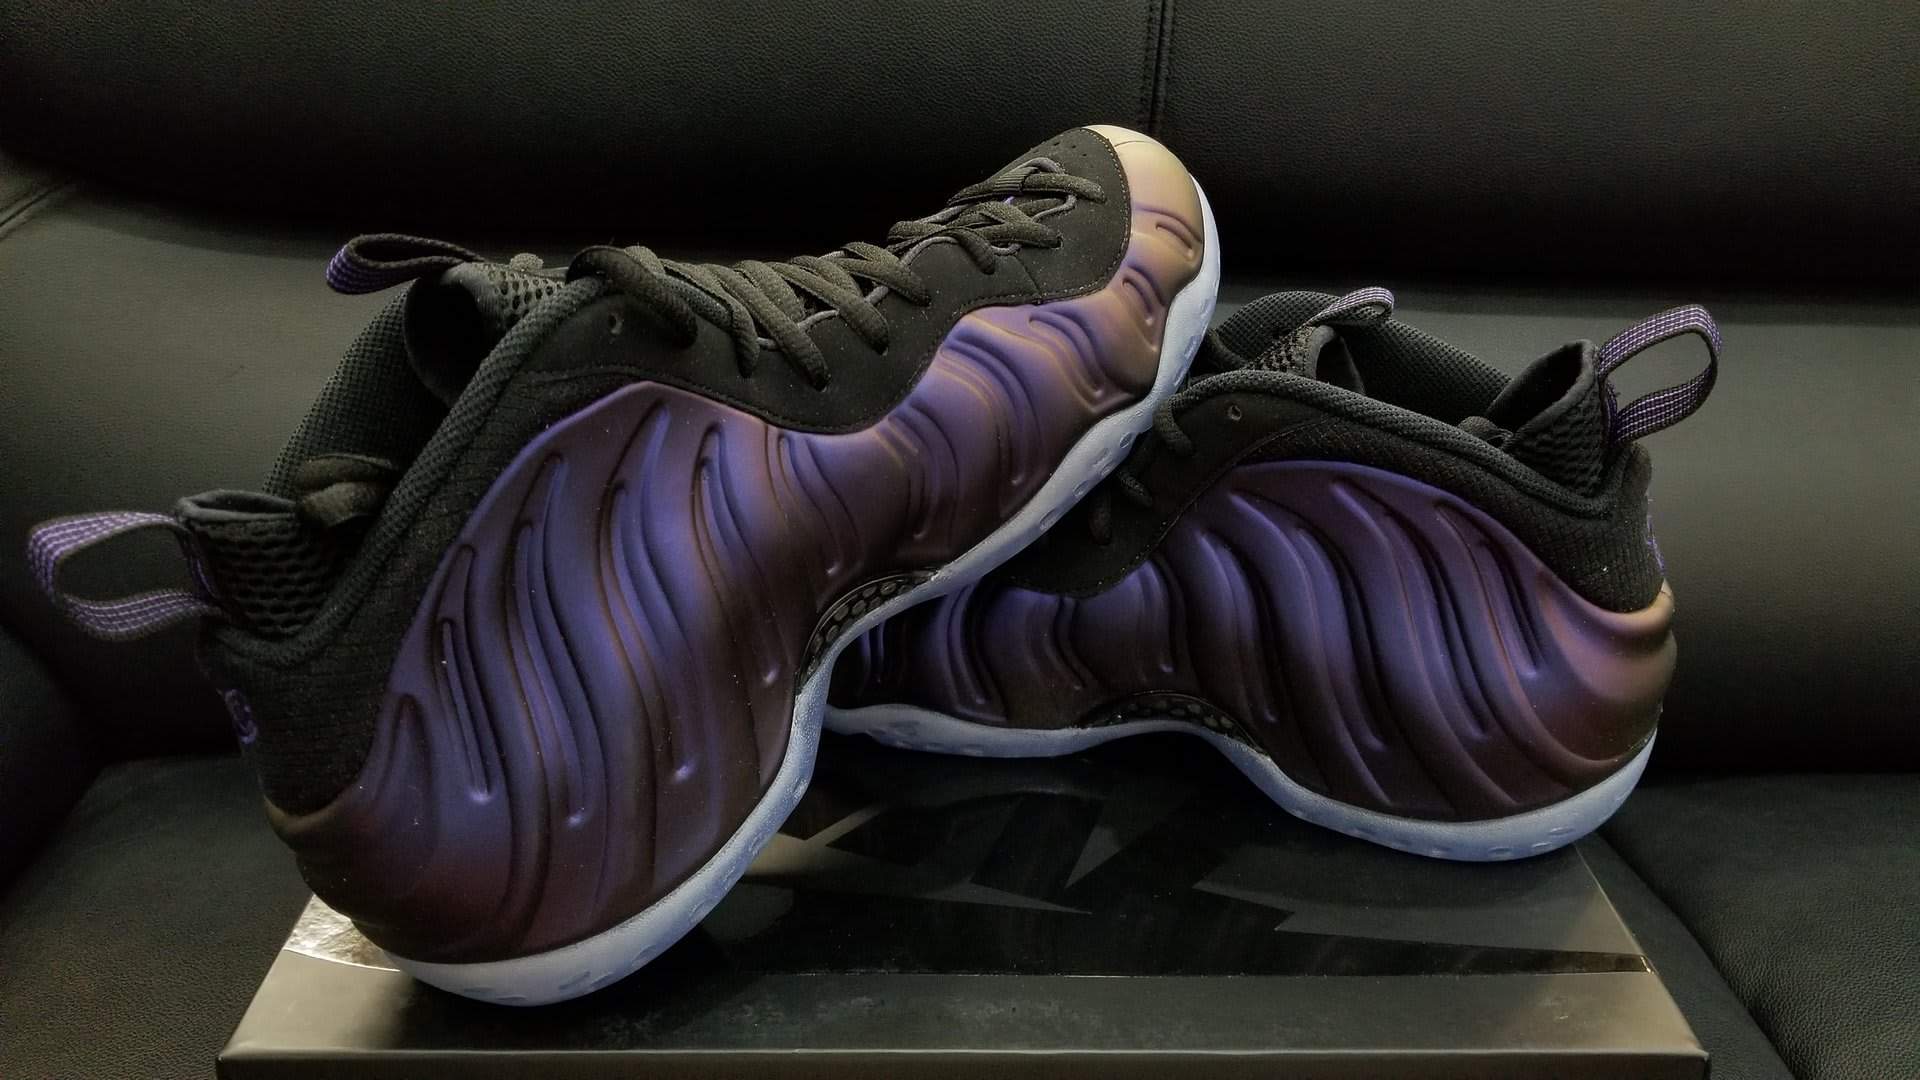 Nike Air Foamposite One Eggplant 2017 Release Date Medial 314996-008